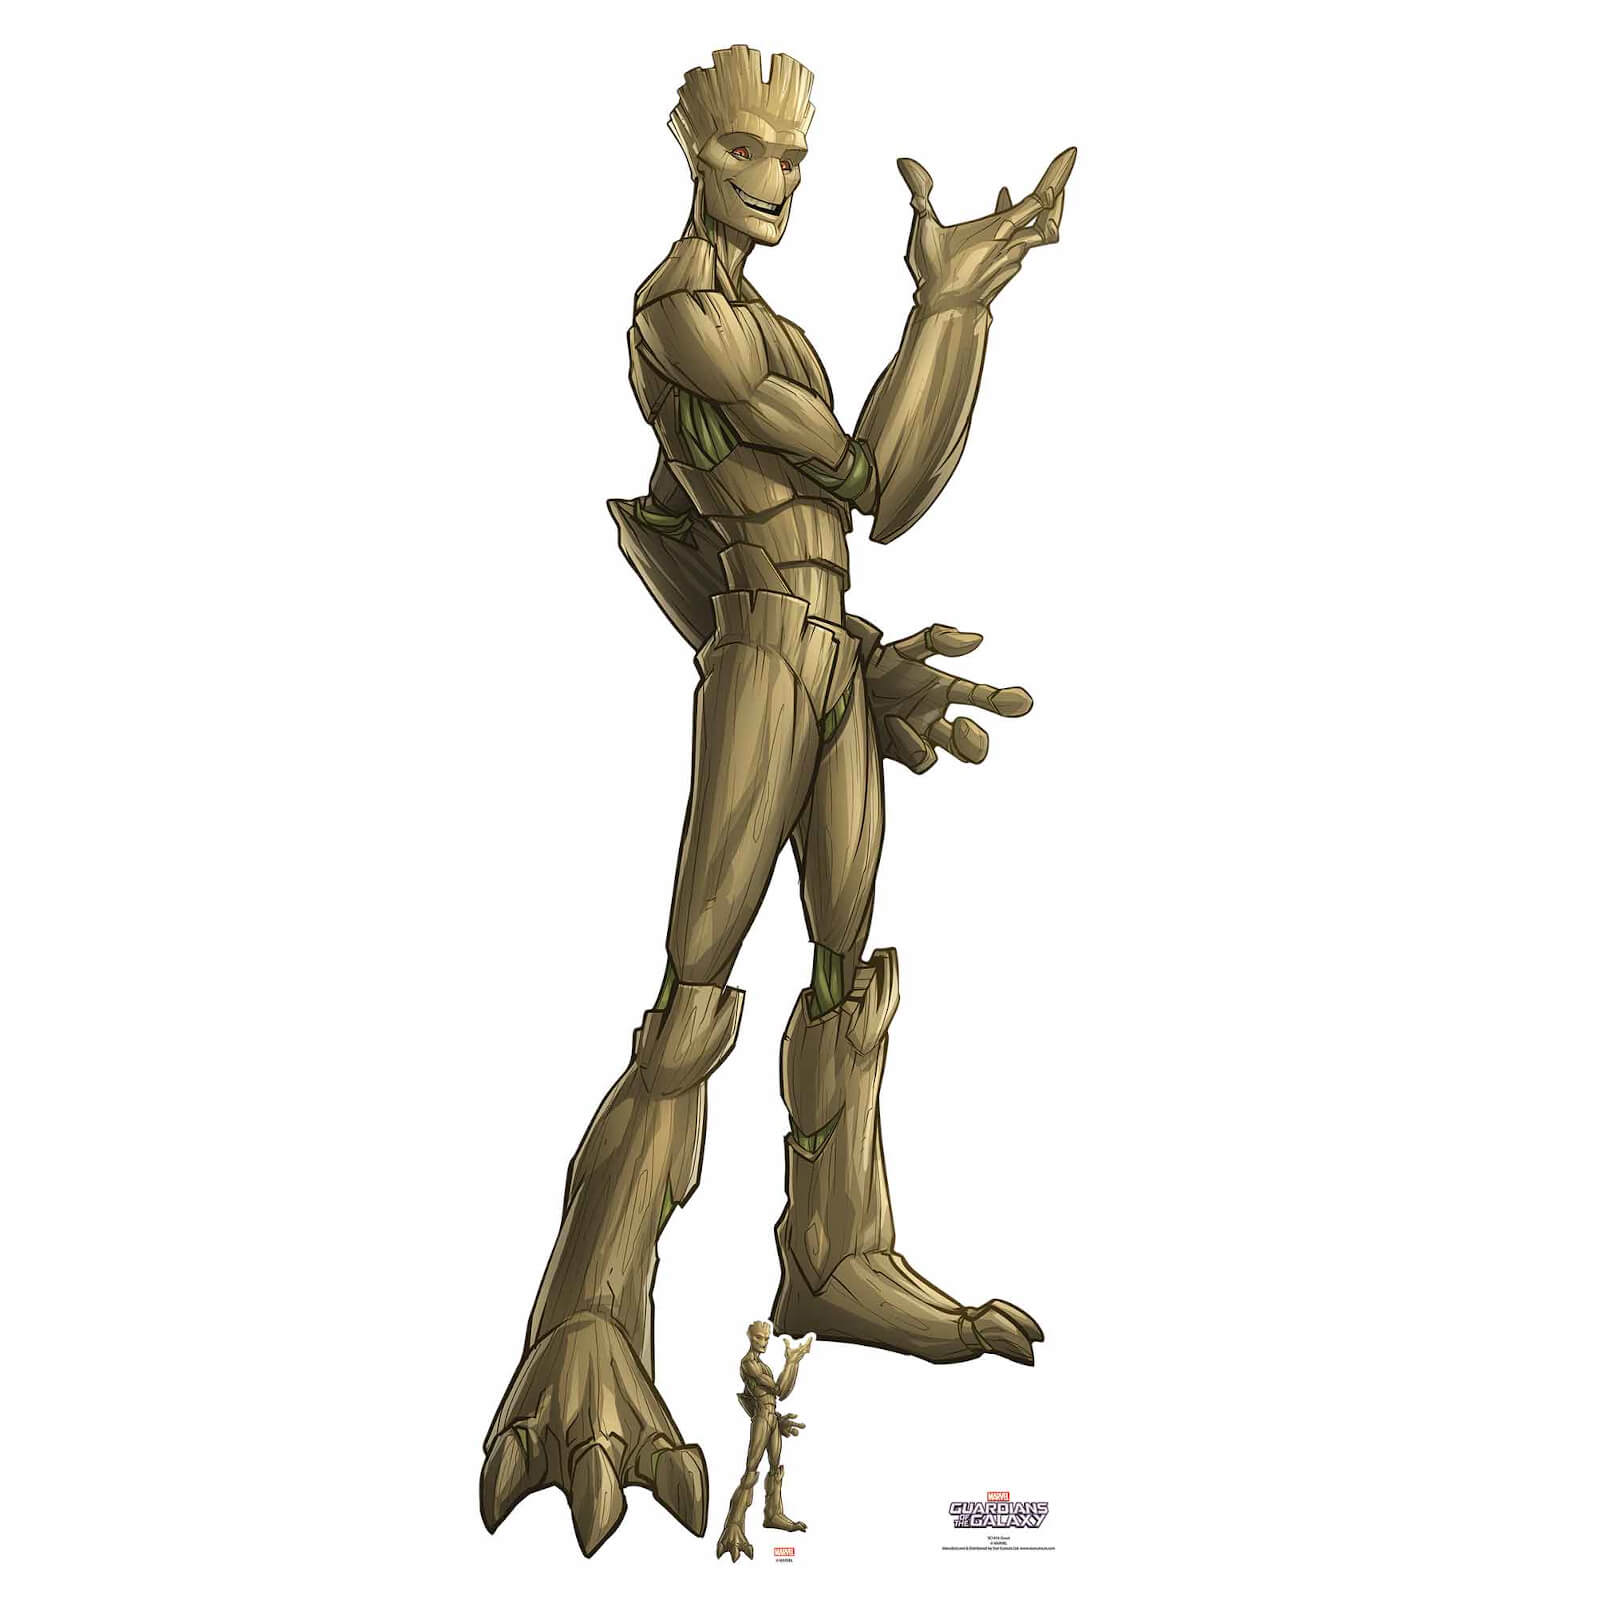 Image of Marvel Guardians of the Galaxy - Groot Oversized Cardboard Cut Out